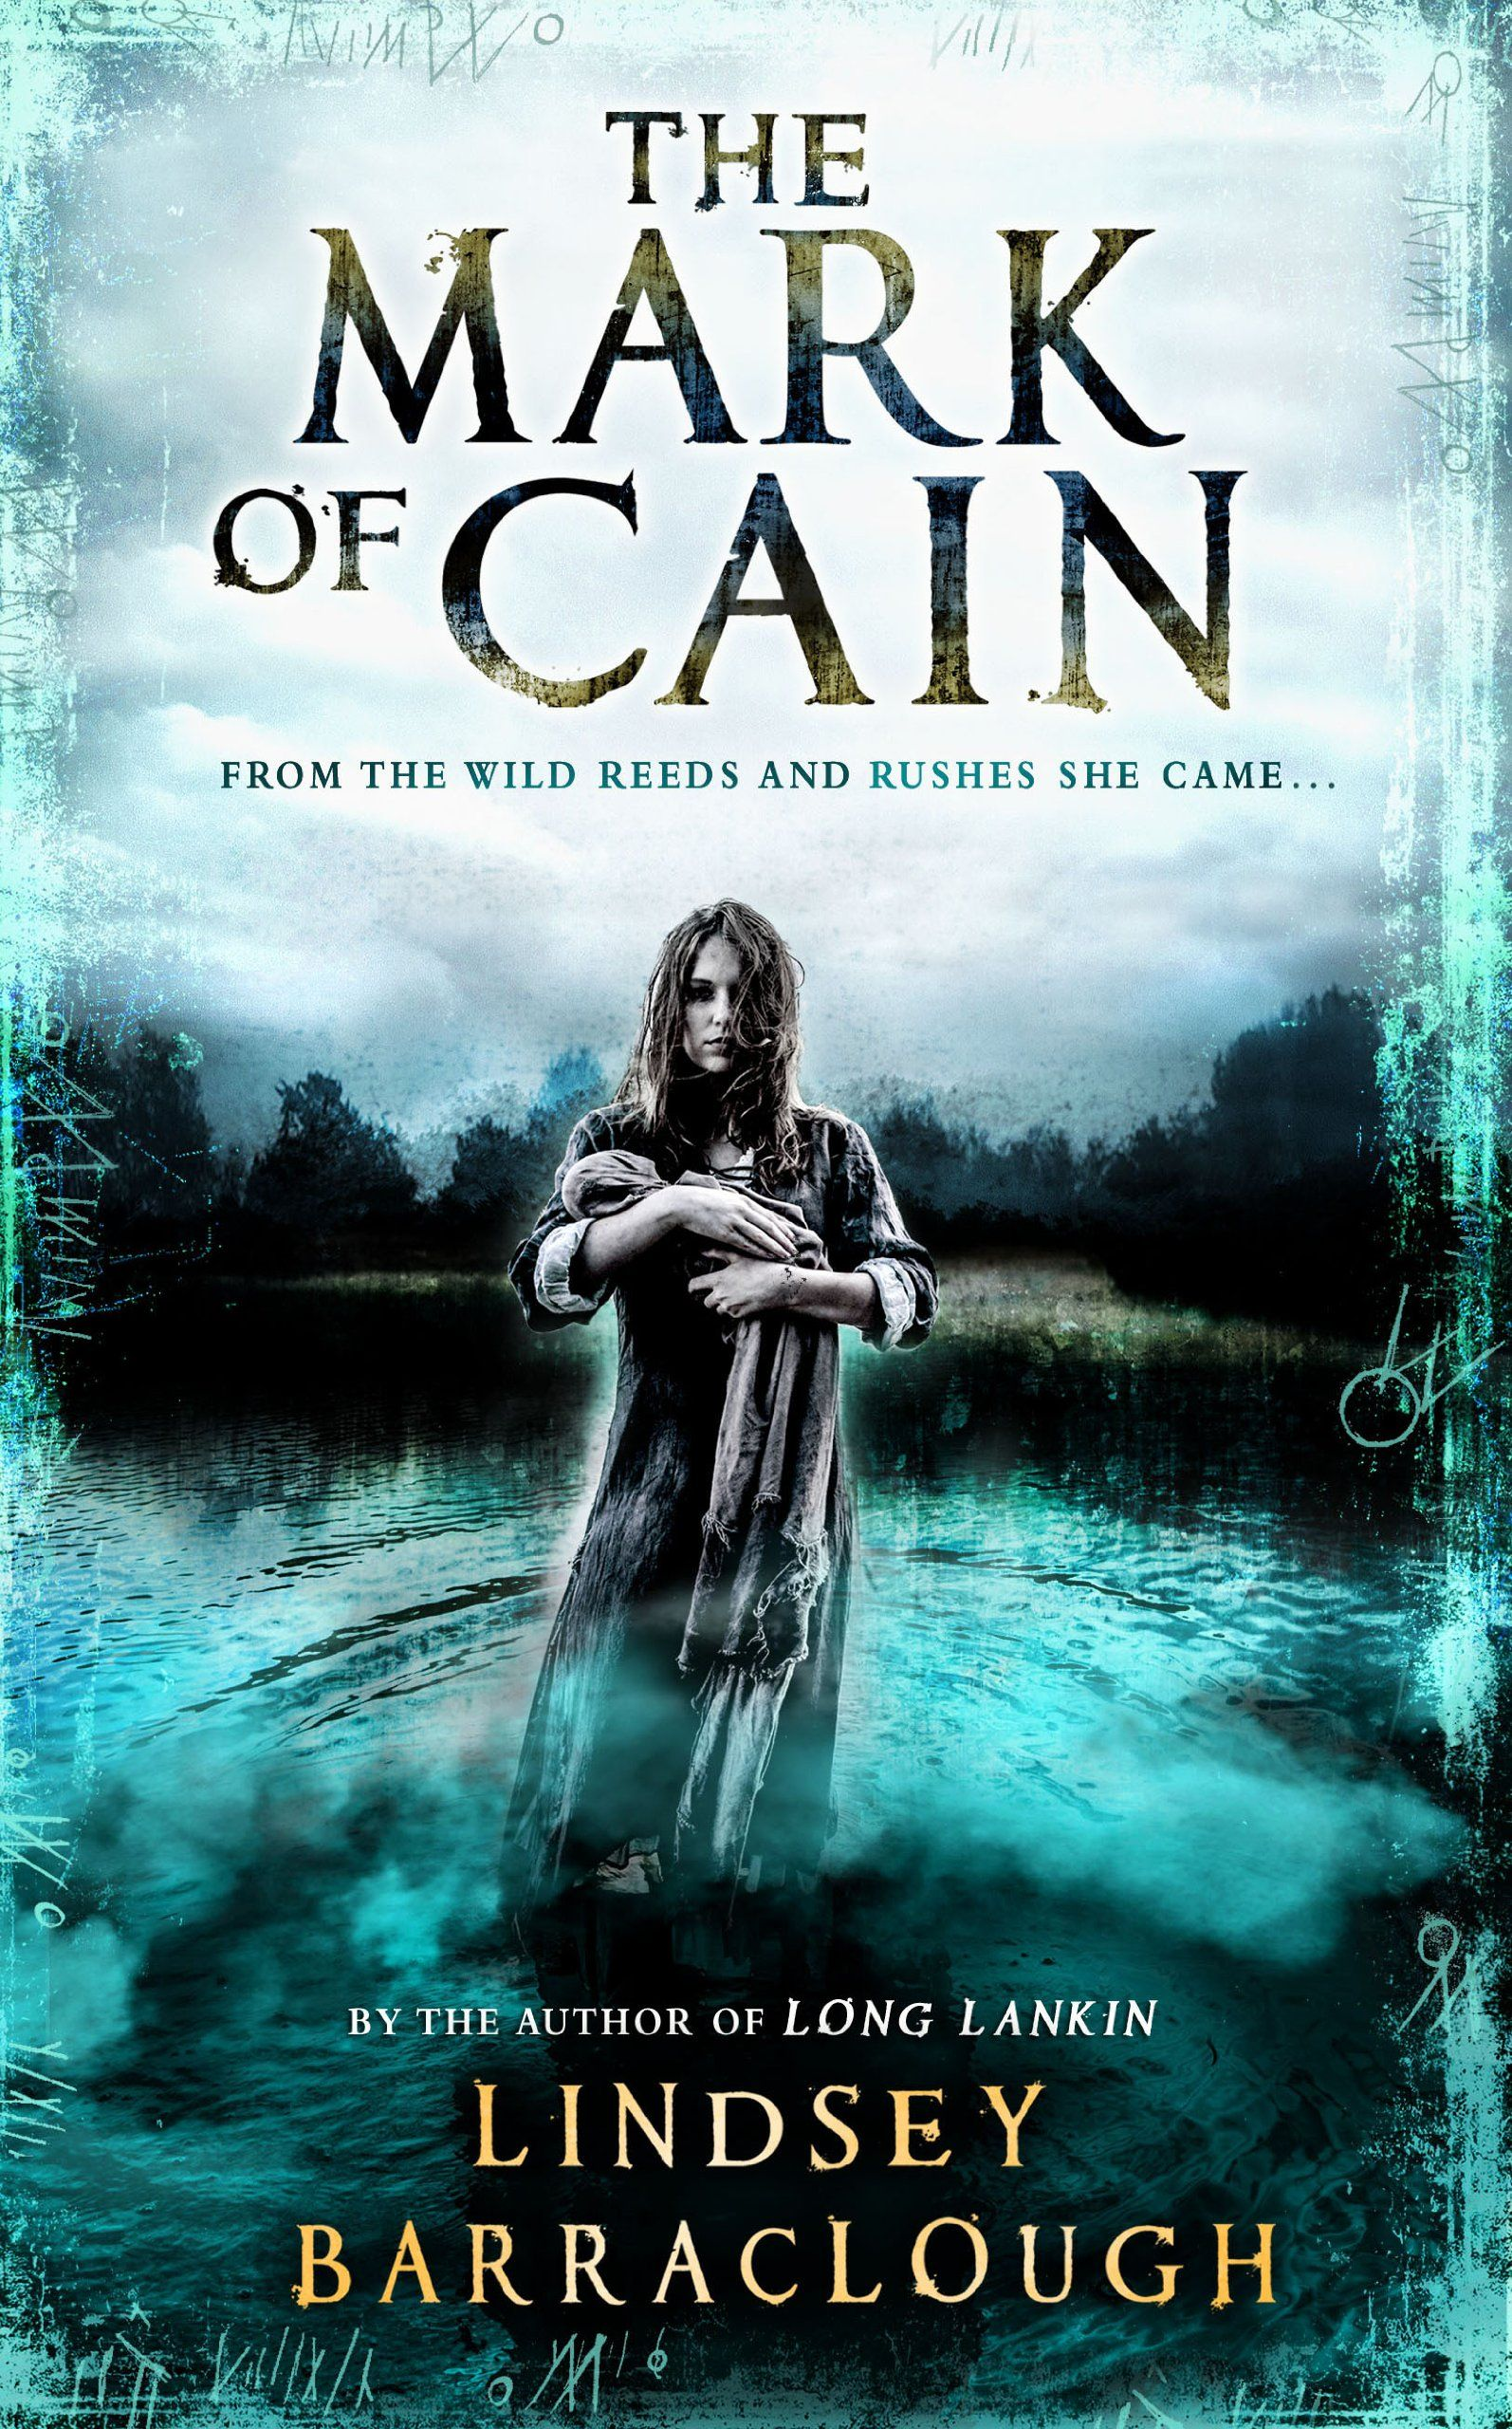 The Mark of Cain: Amazon.co.uk: Lindsey Barraclough: 9780552569613: Books